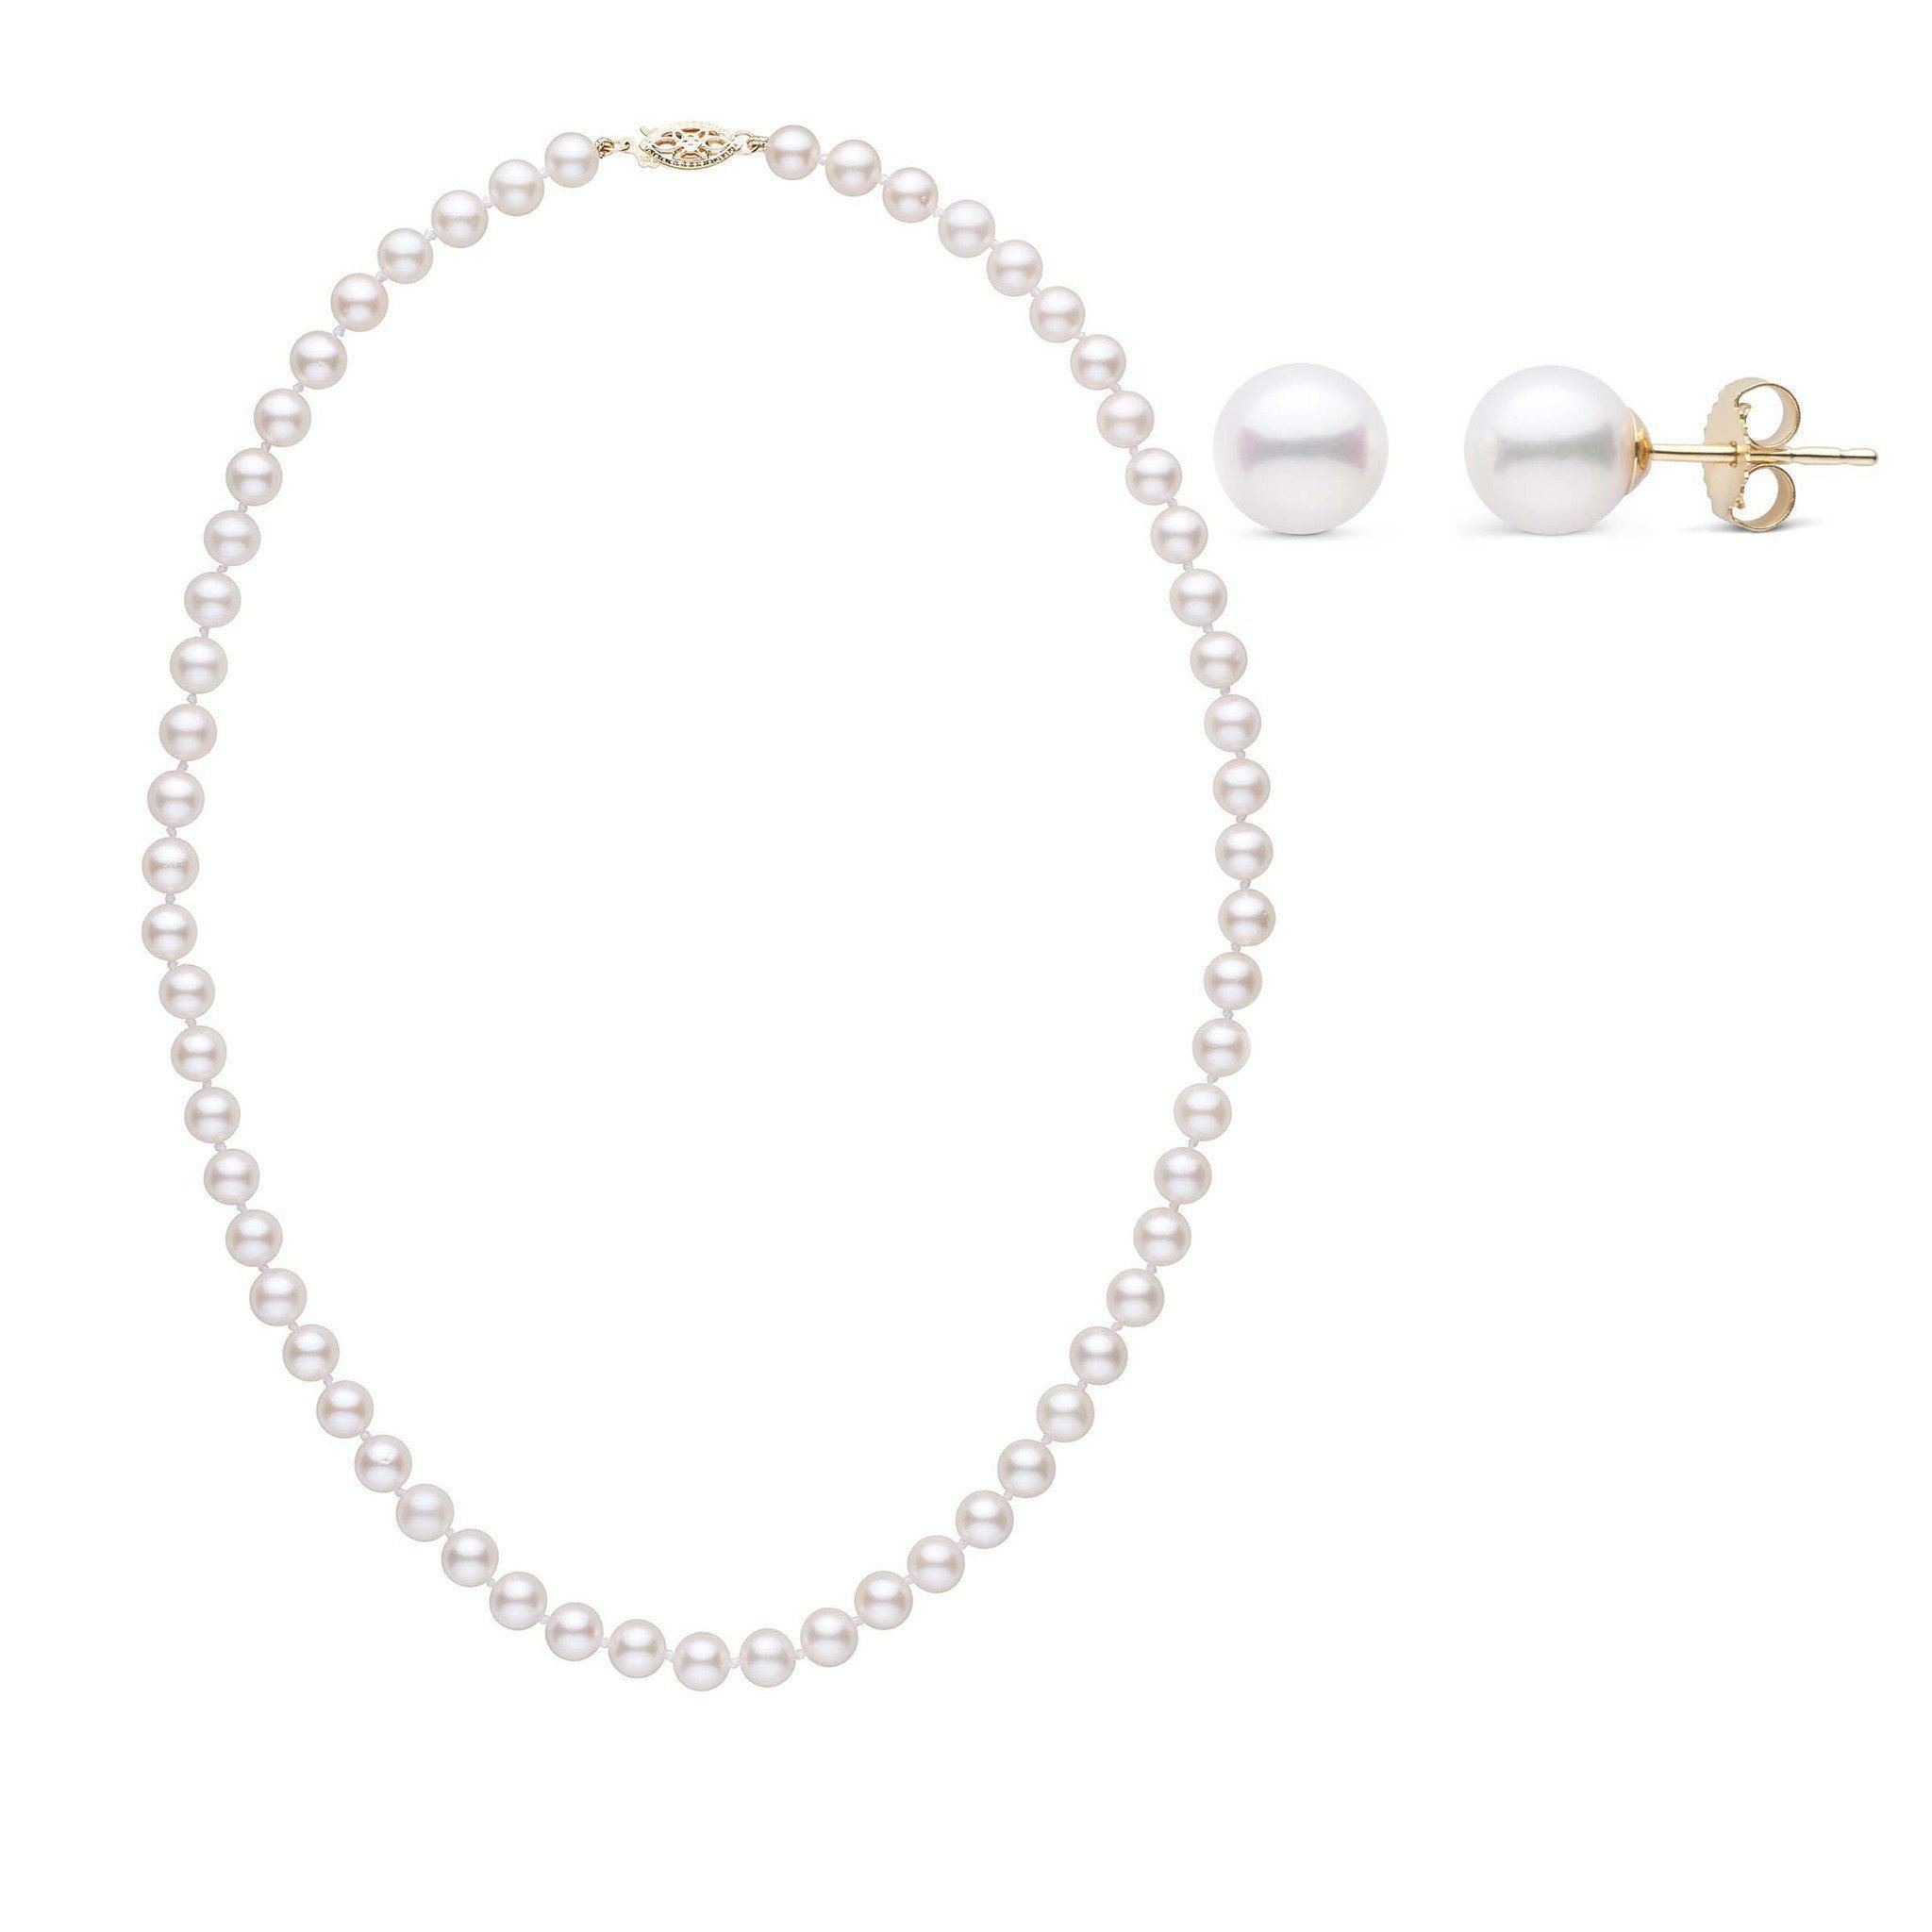 16 Inch 2 Piece Set of 6.0-6.5 mm AA+ White Akoya Pearls